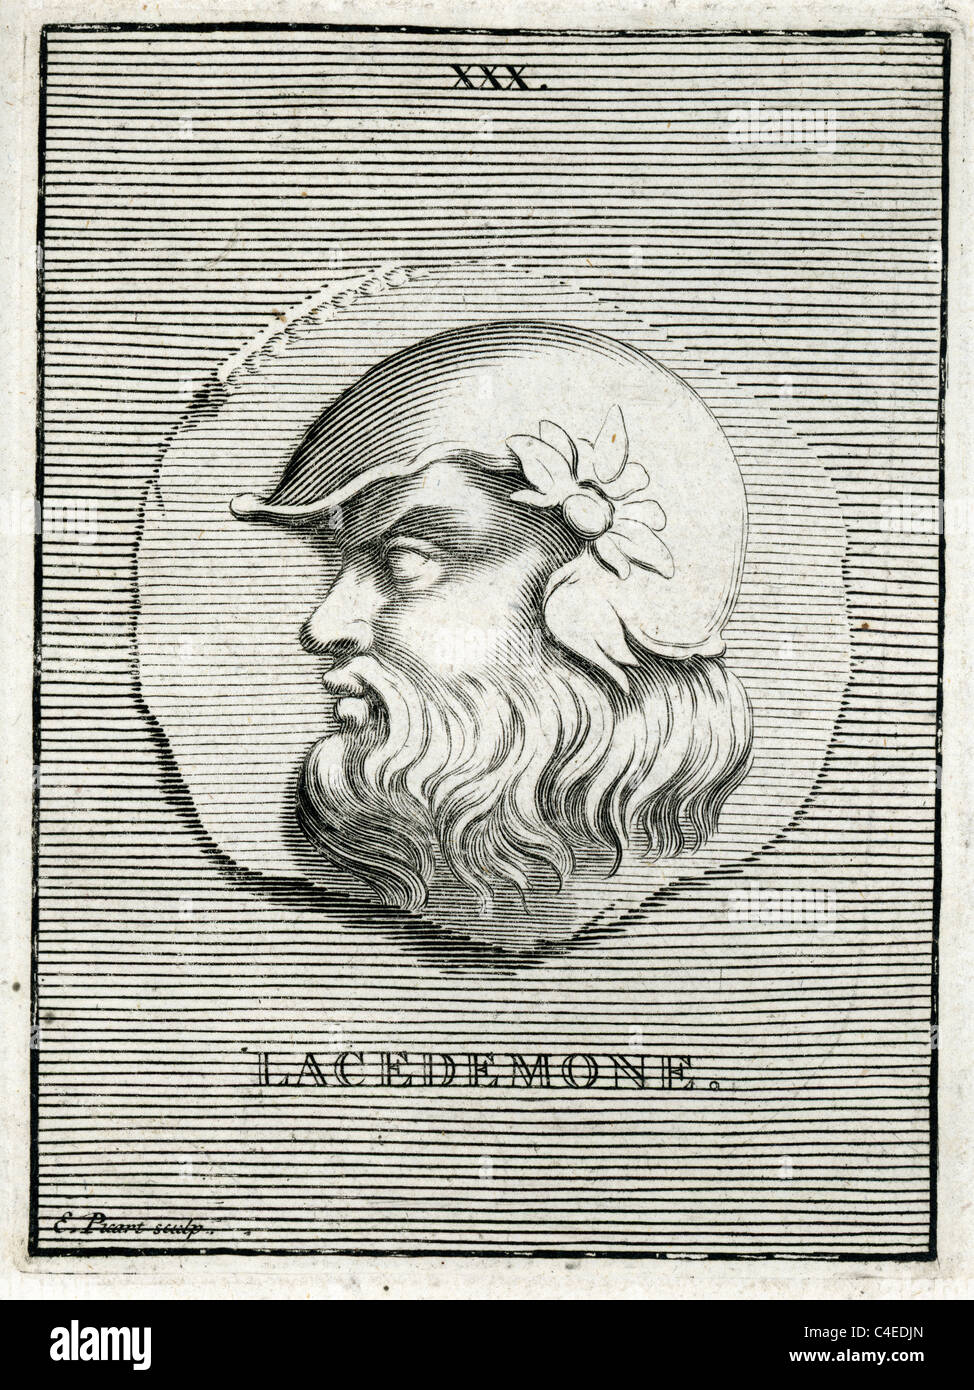 Classical portrait of Lacedemone in Greek mythology son of Zeus and the Pleaid Taygete and a Mythical King of Sparta. - Stock Image